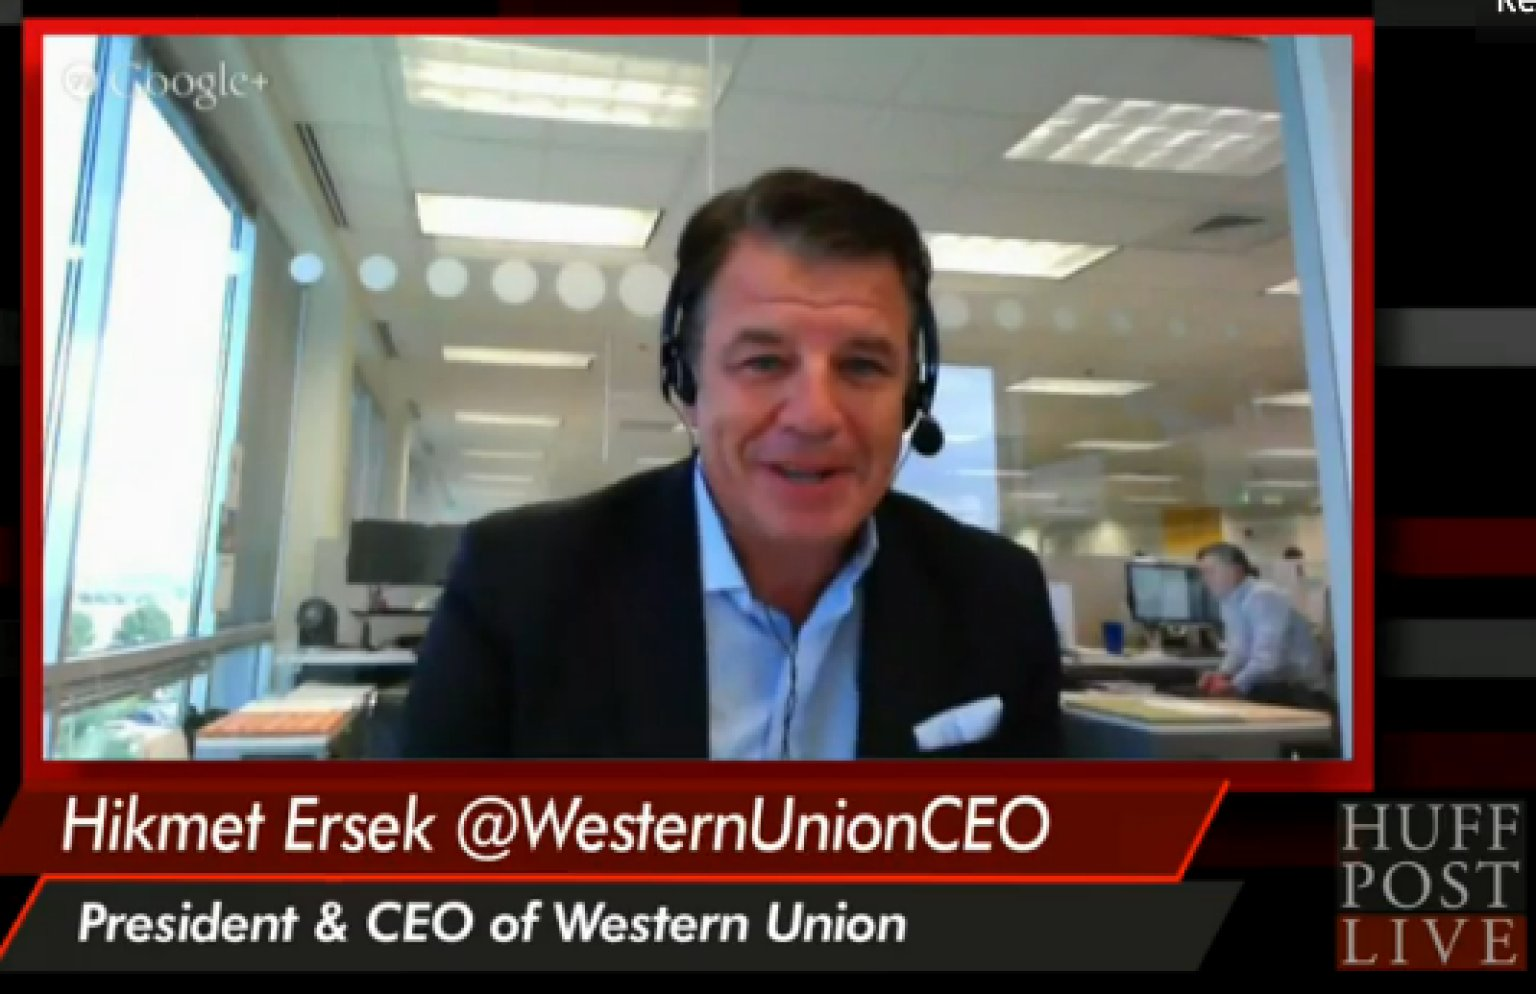 western union ceo pushes 39 work hard play hard 39 mentality video huffpost. Black Bedroom Furniture Sets. Home Design Ideas